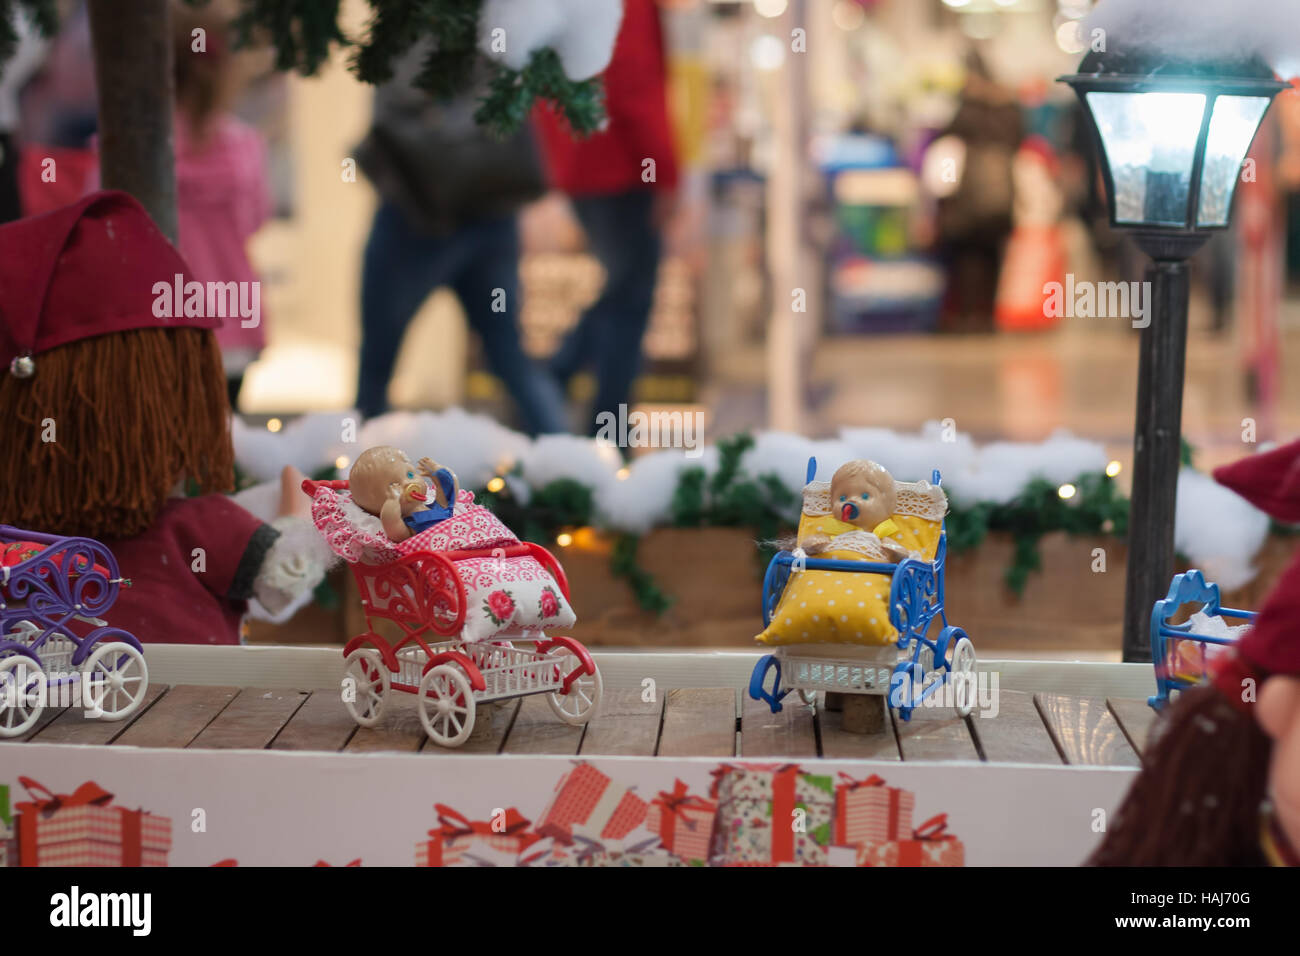 BRNO,CZECH REPUBLIC-NOVEMBER 19,2016:Miniature doll buggies on conveyor belt  at shopping center Olympia on November - Stock Image